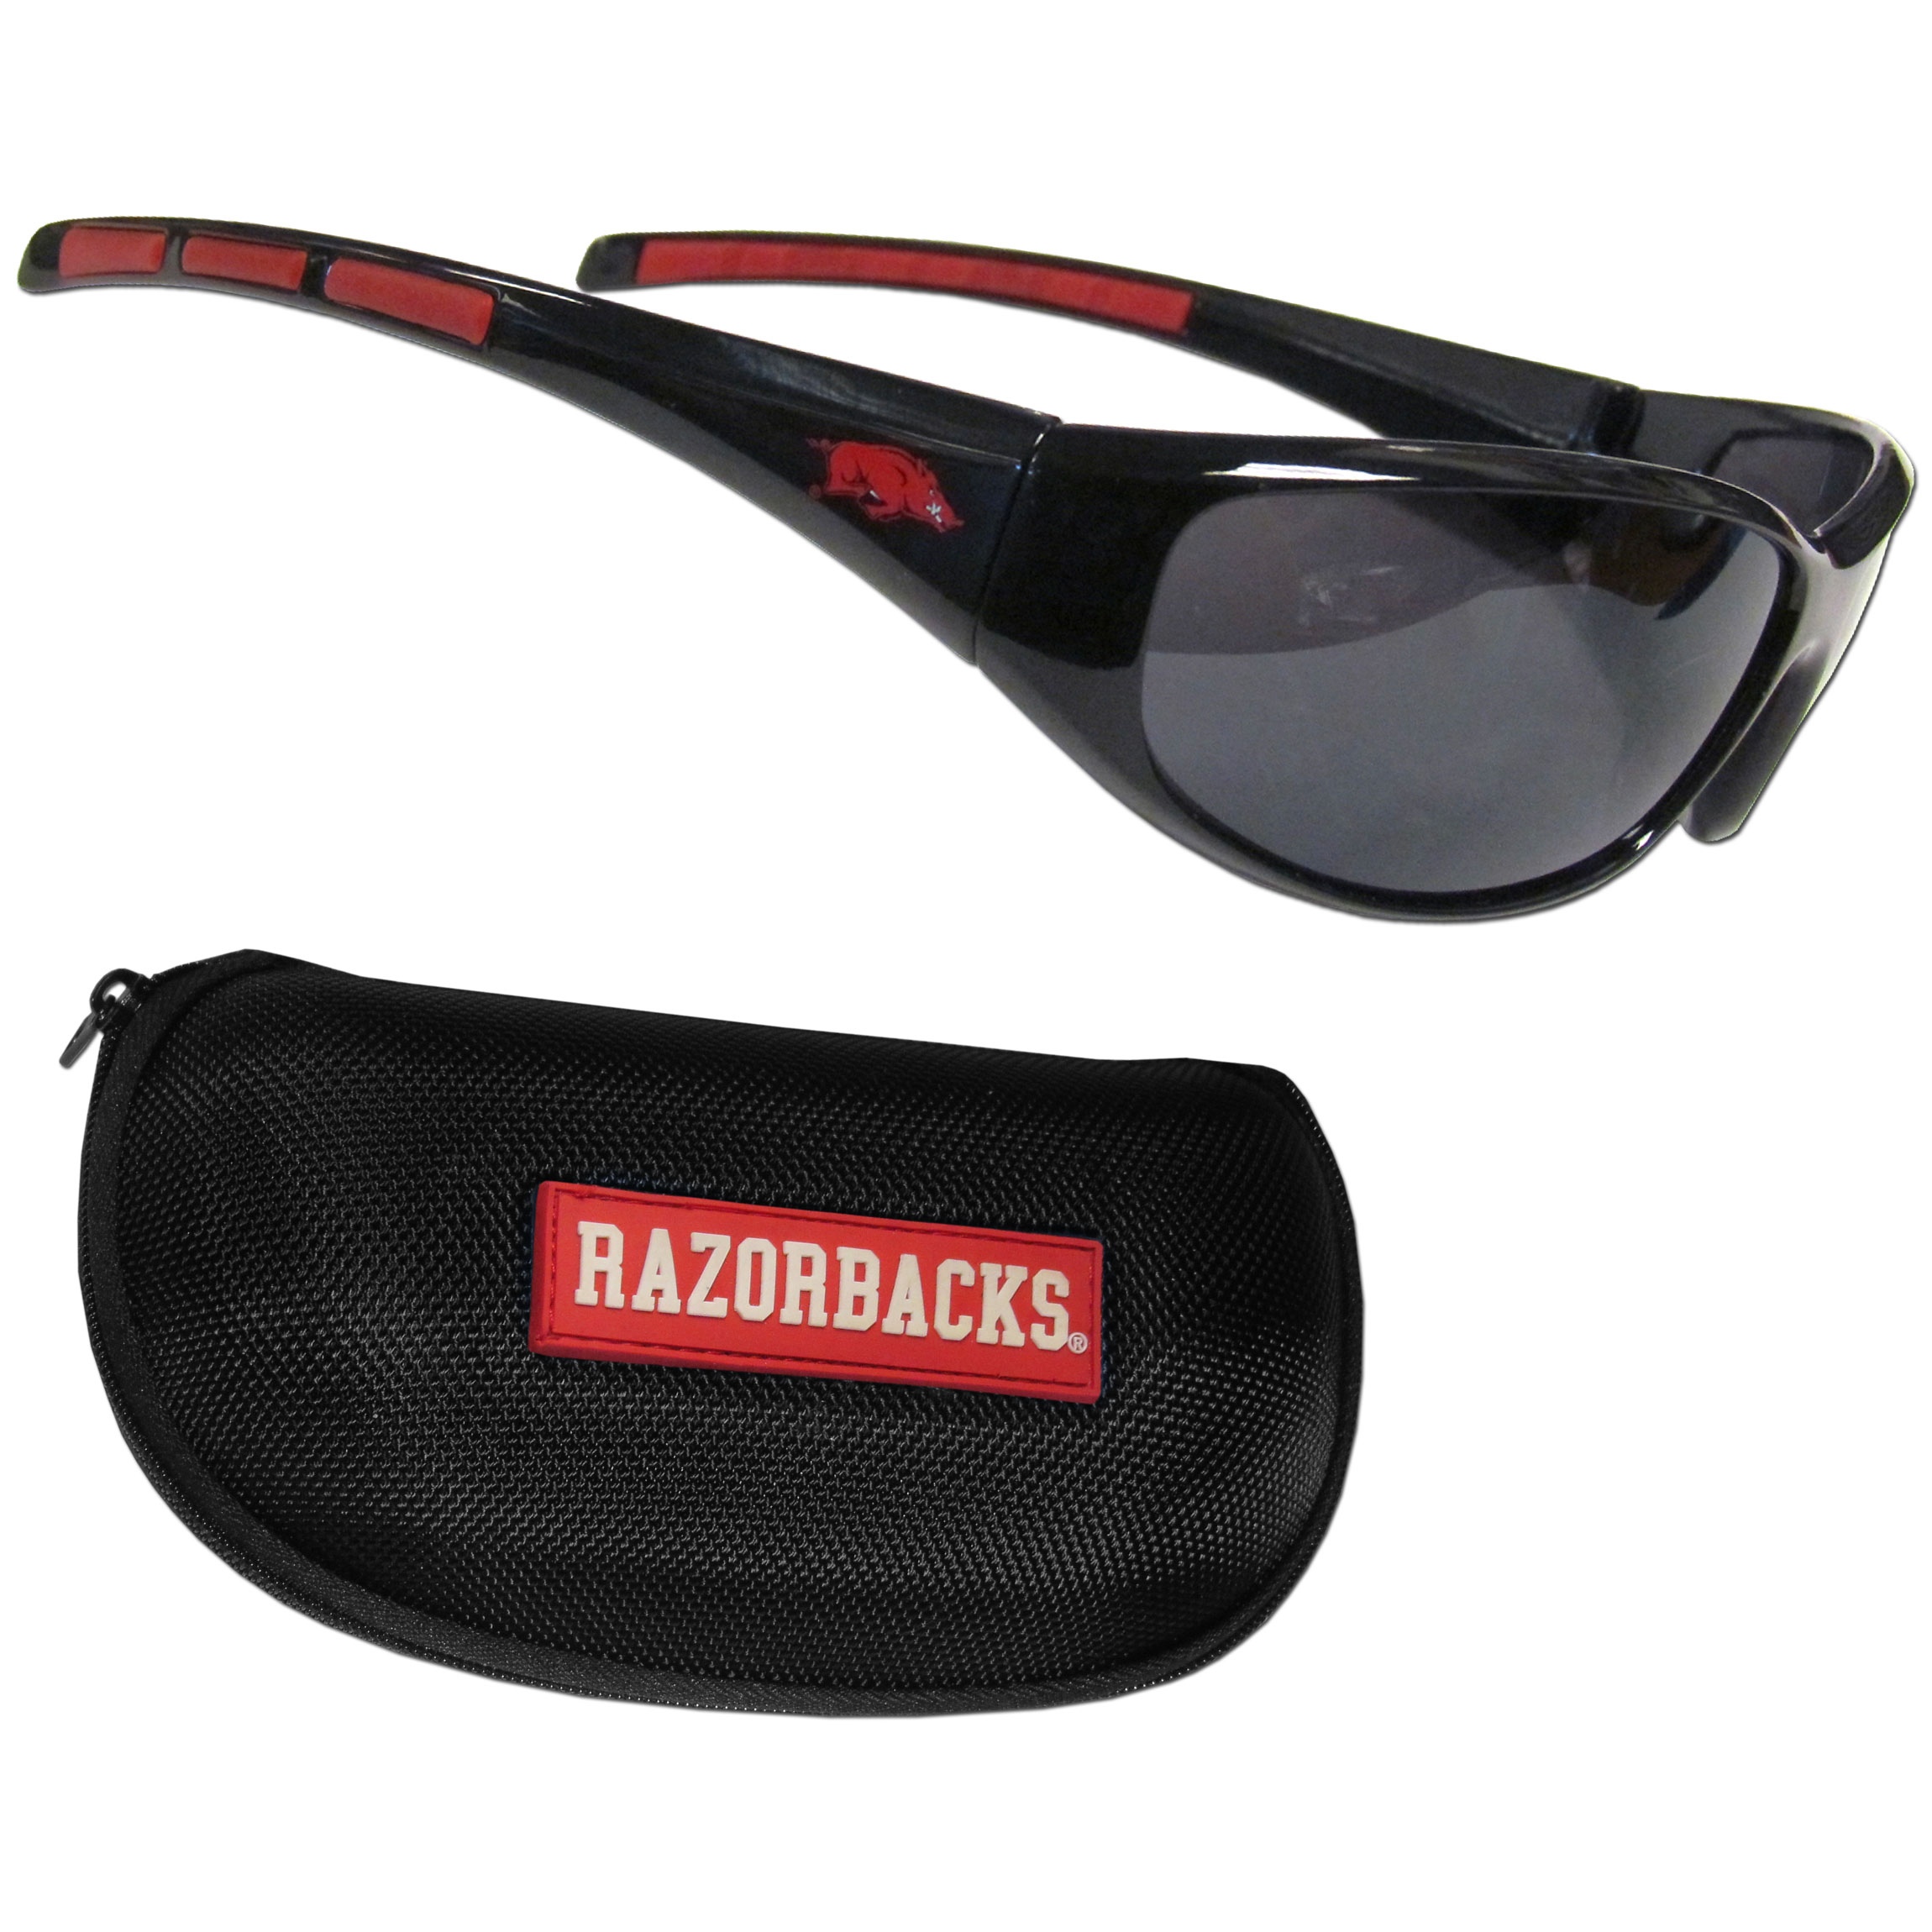 Arkansas Razorbacks Wrap Sunglass and Case Set - This great set includes a high quality pair of Arkansas Razorbacks wrap sunglasses and hard carrying case.